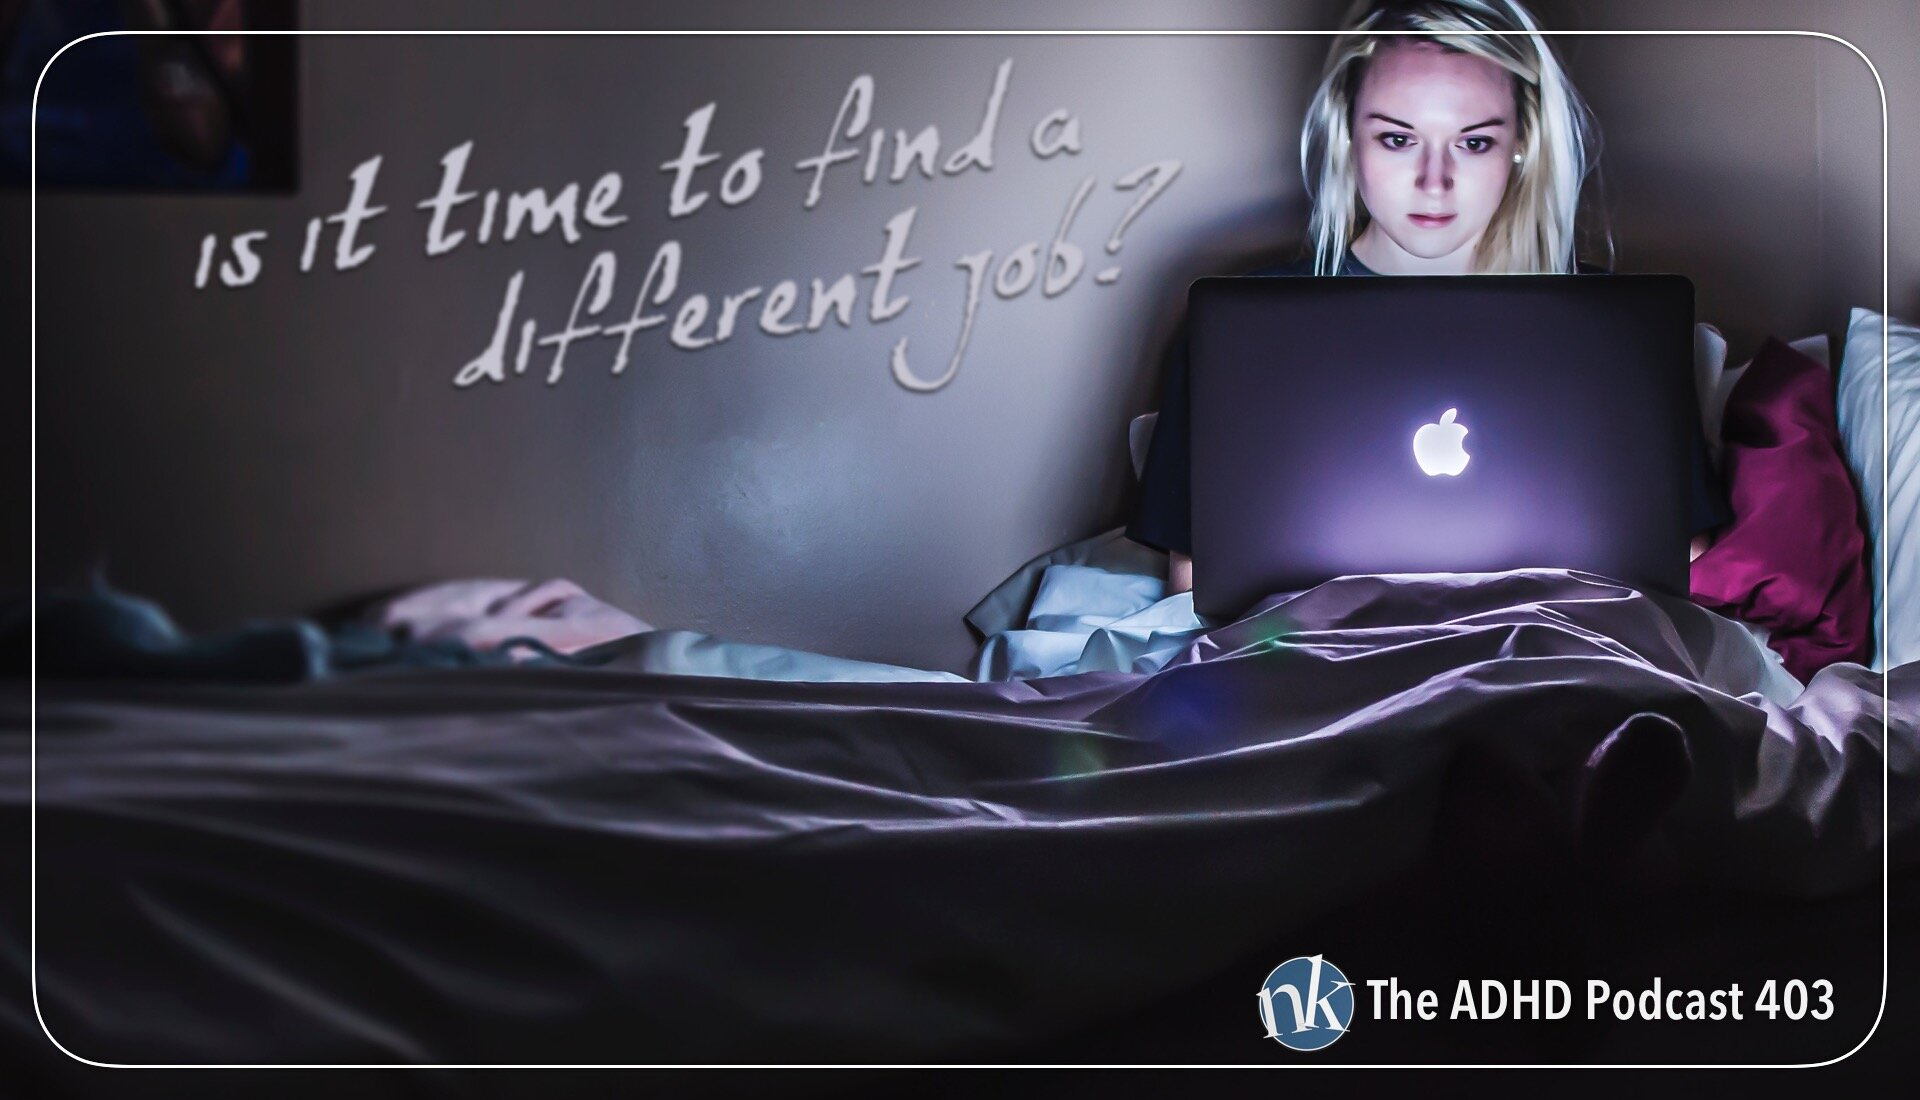 Is it time to look for a new job? Taking Control The ADHD Podcast